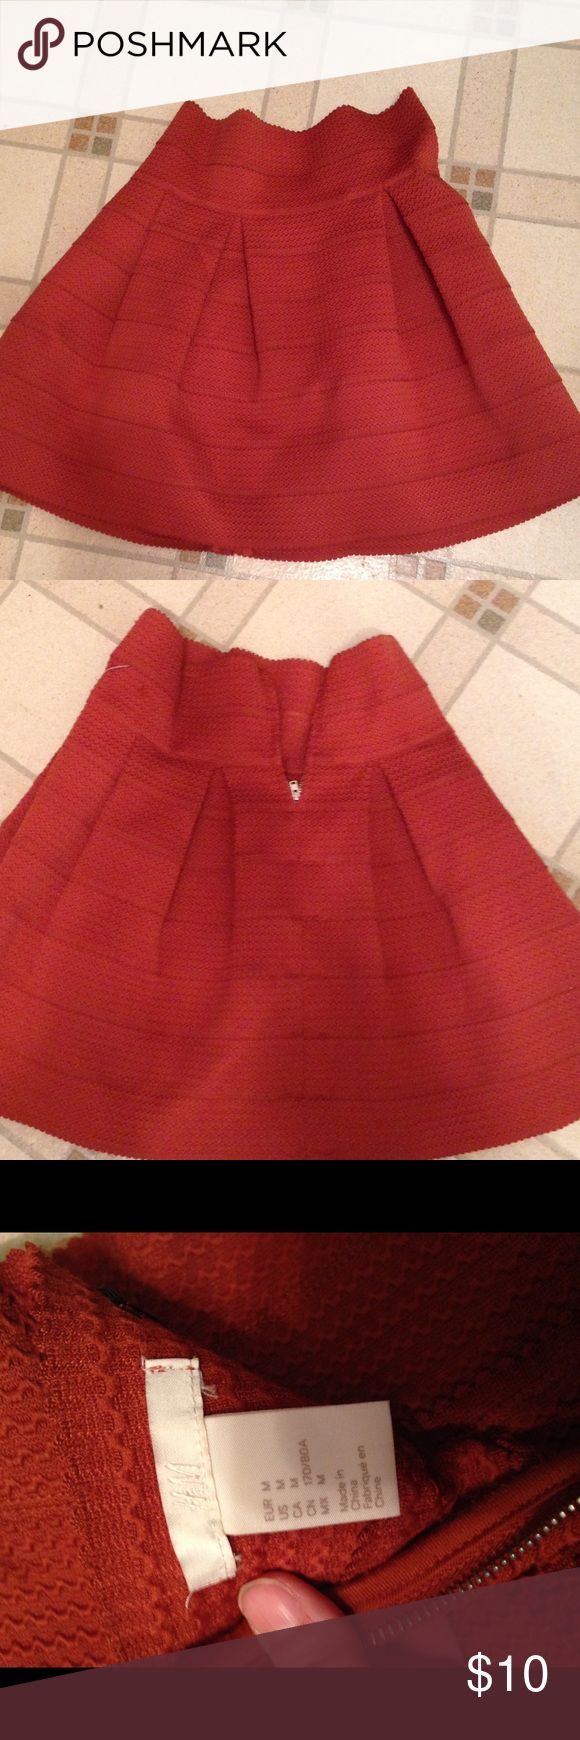 H and M full skirt H and M full skirt bought off of here but is too big for me smoke free pet free home h & m Skirts Circle & Skater